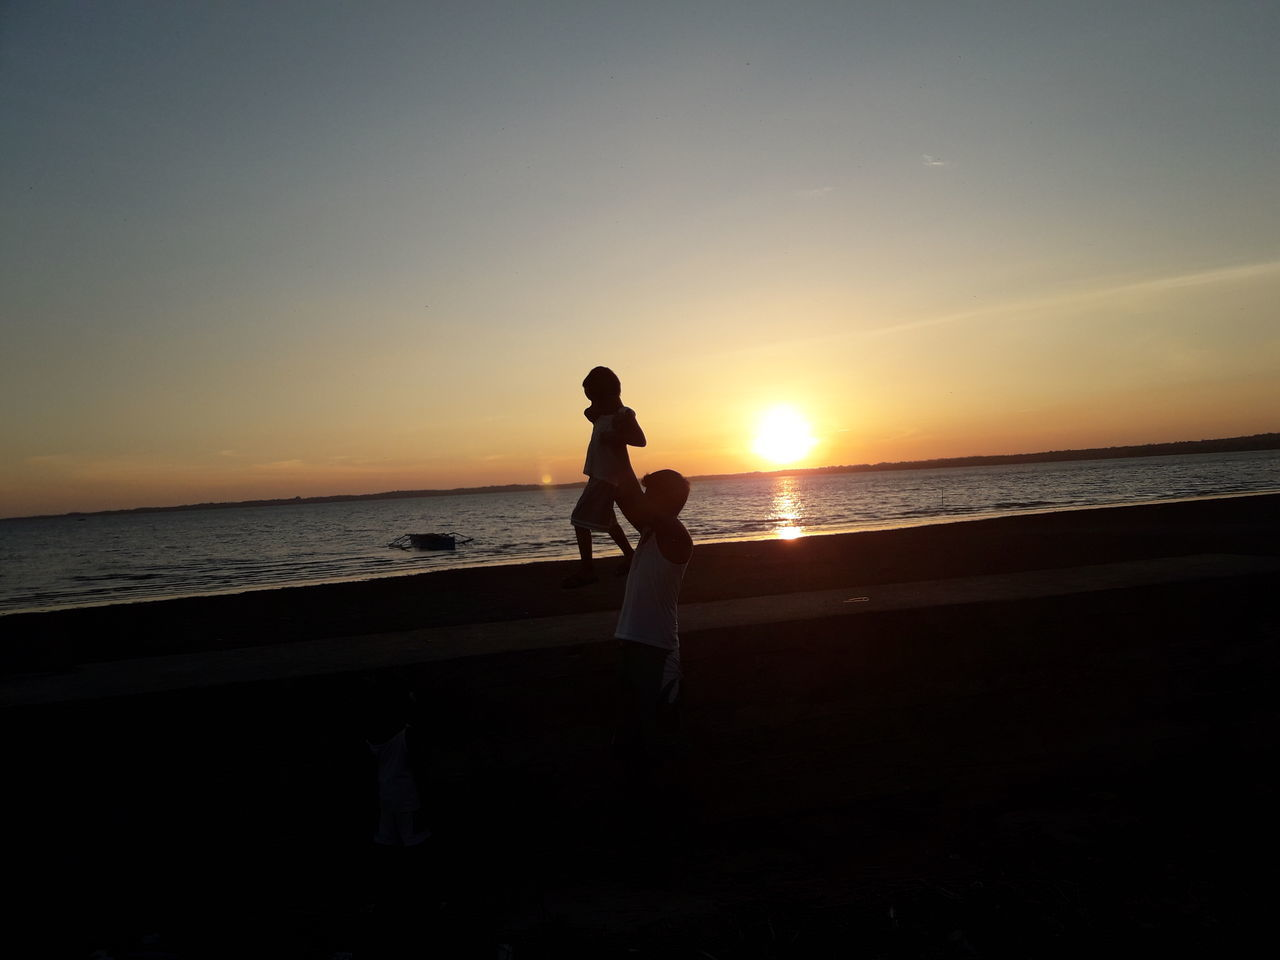 sunset, sea, beach, water, horizon over water, silhouette, scenics, nature, beauty in nature, two people, sun, side view, full length, standing, tranquility, tranquil scene, sky, leisure activity, sand, real people, vacations, outdoors, men, day, people